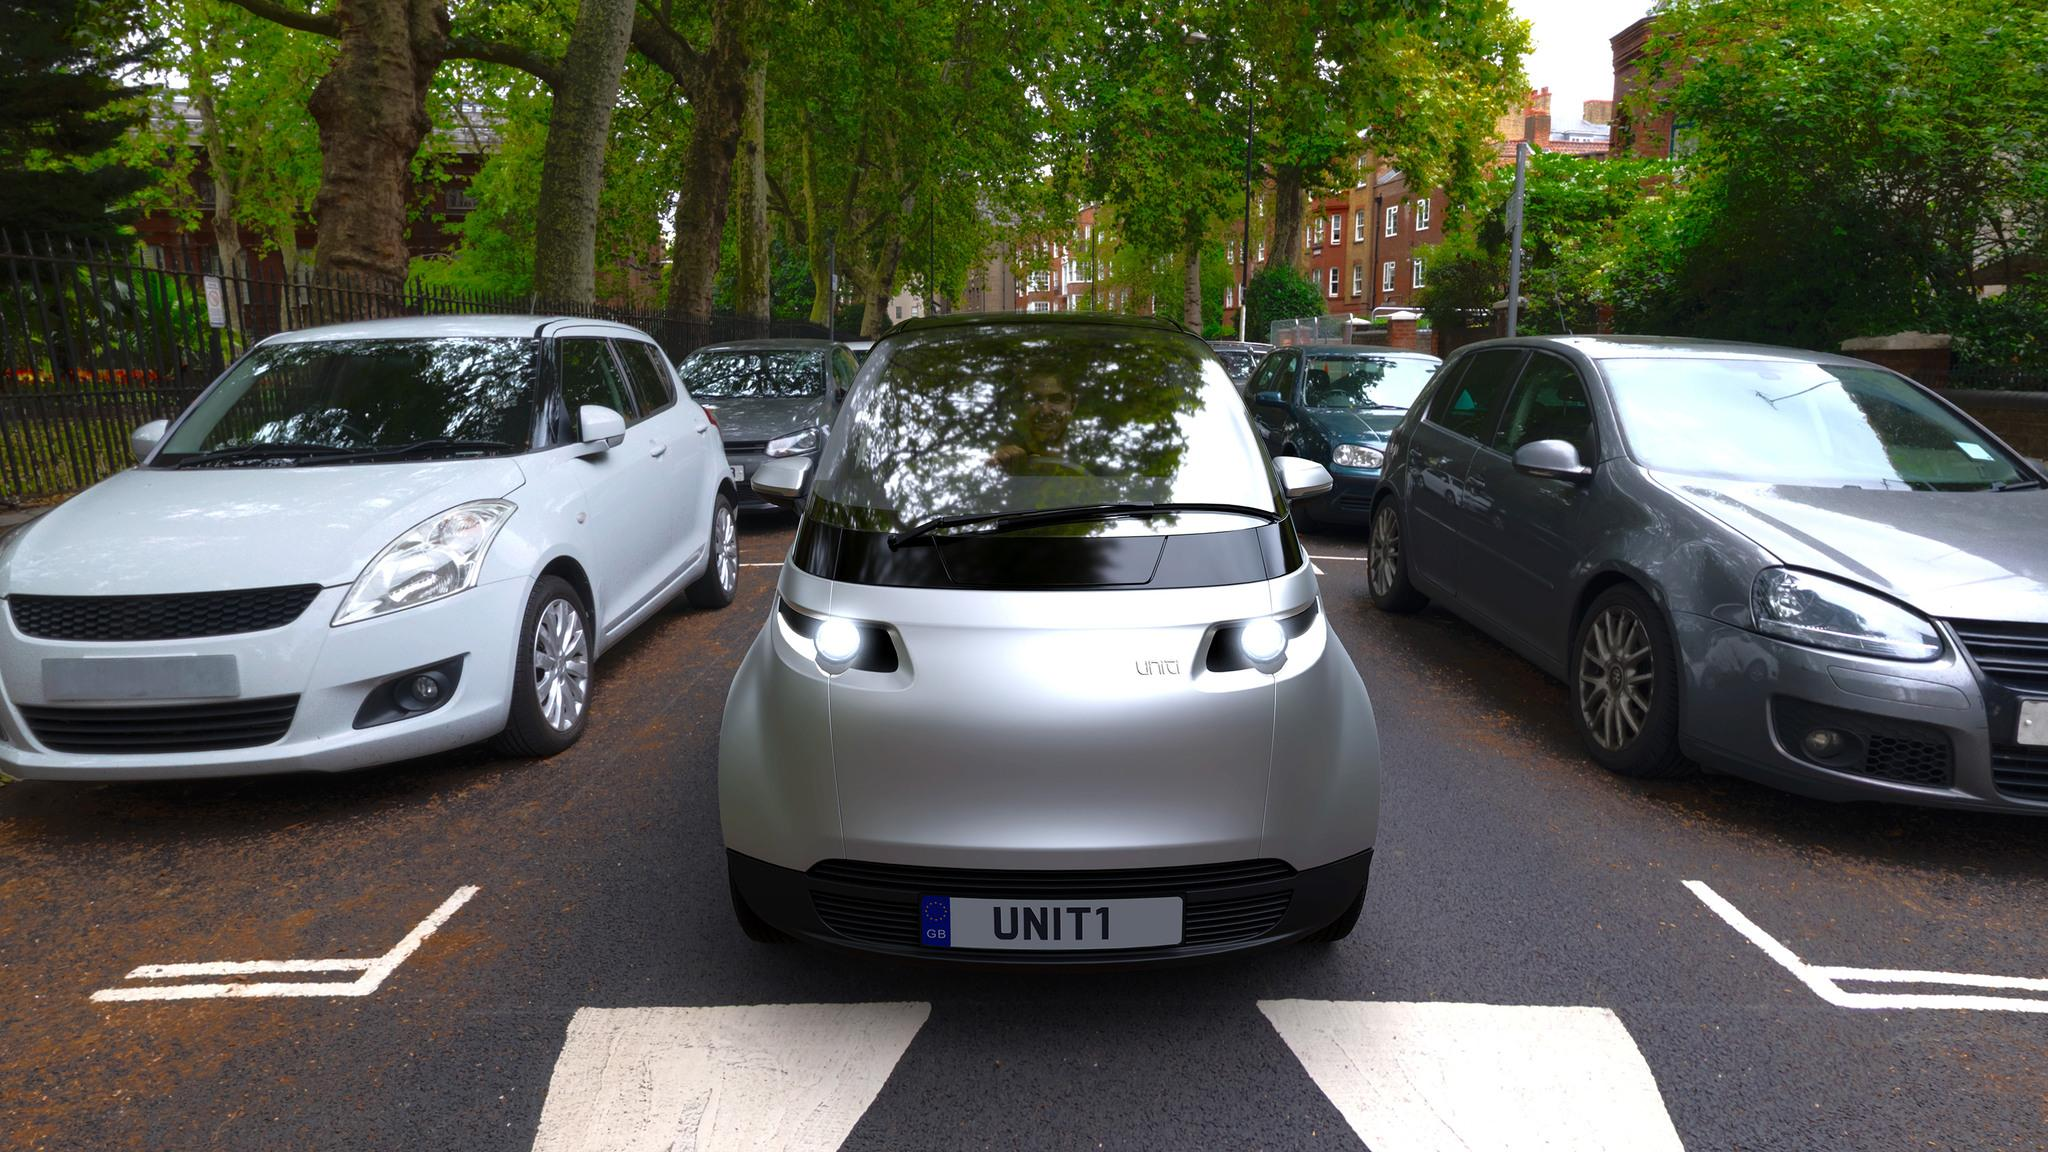 A futuristic-looking, silver-coloured car driving on the road between parked cars on each side.